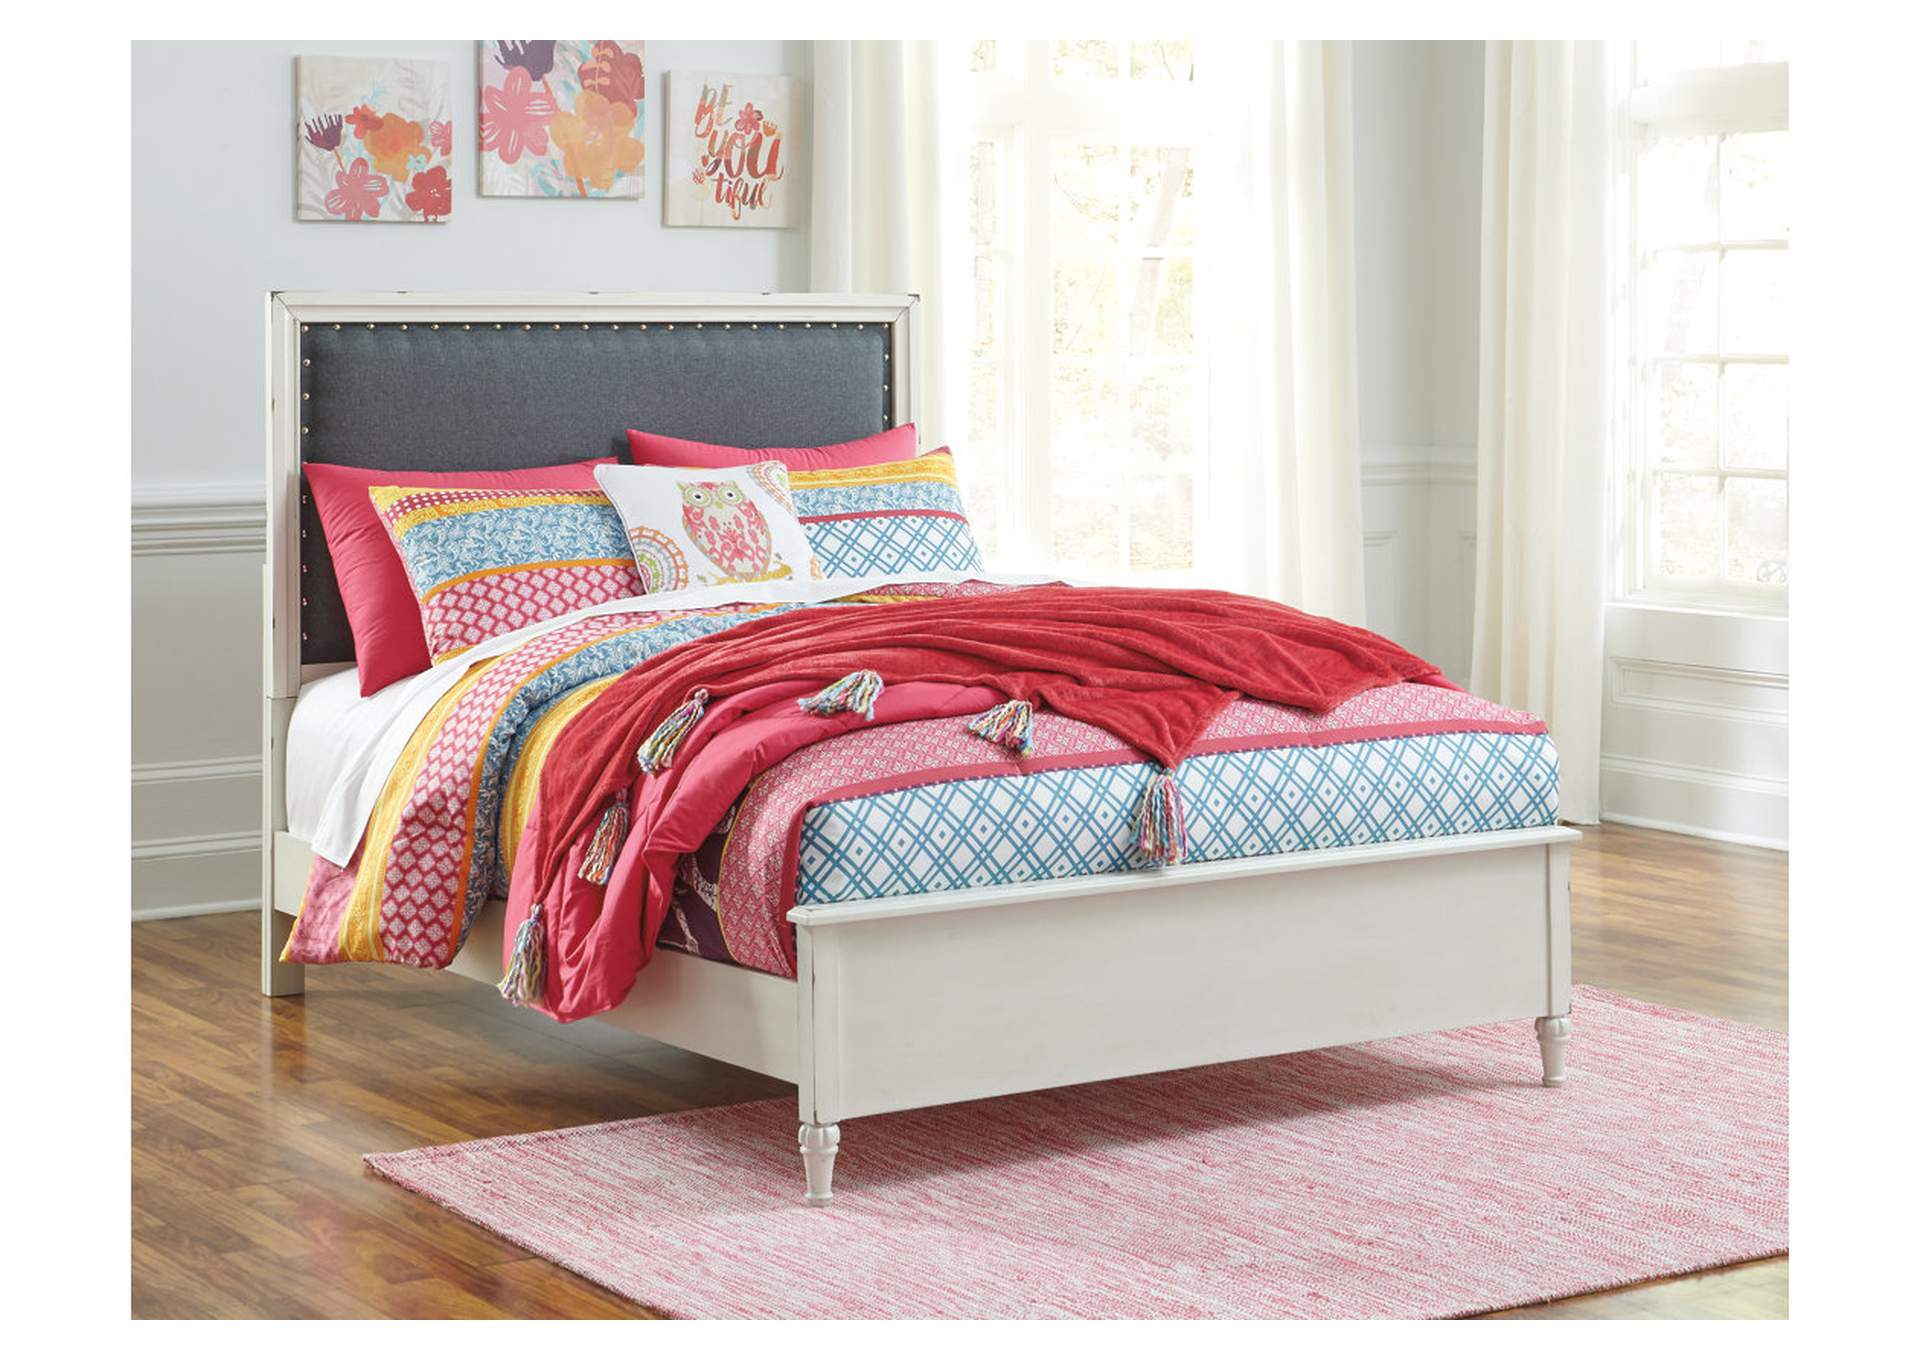 Faelene Chipped White Full Upholstered Panel Bed,Signature Design By Ashley